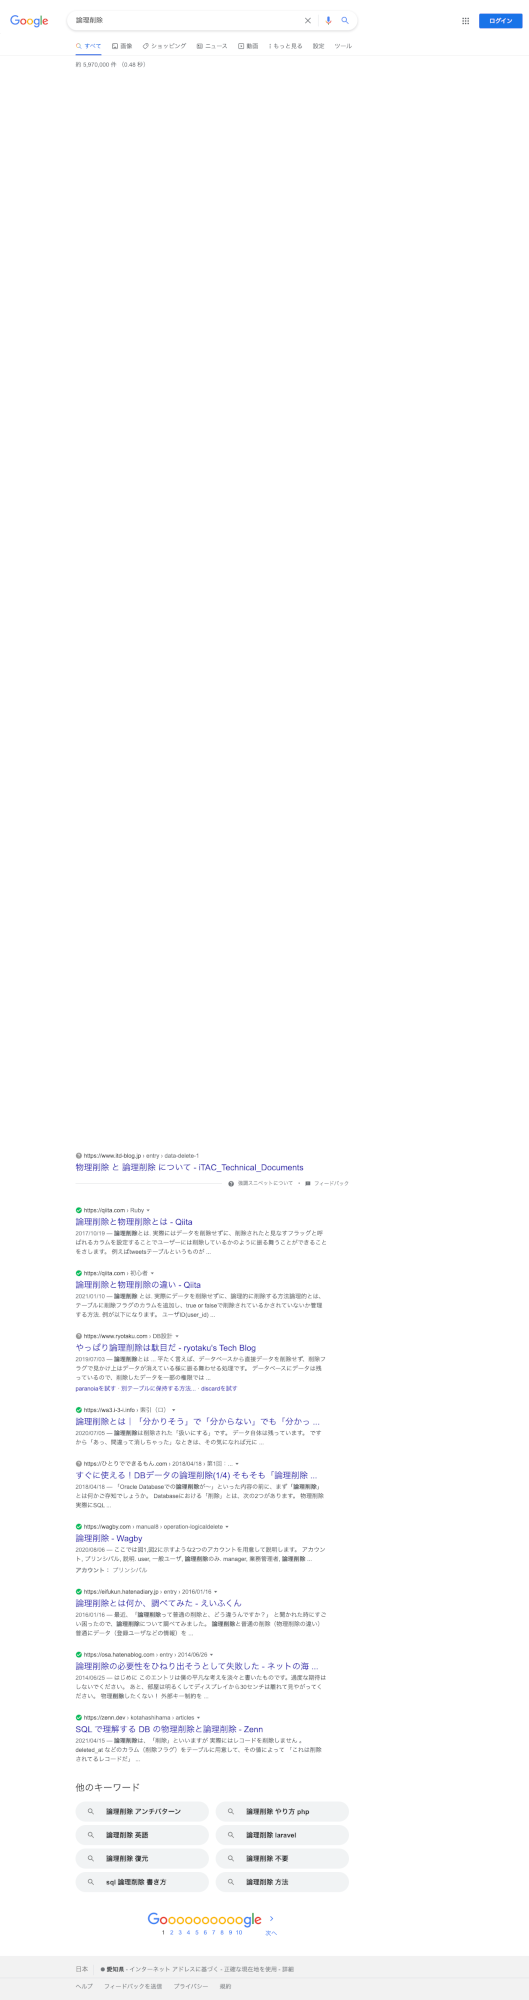 searchresult.png